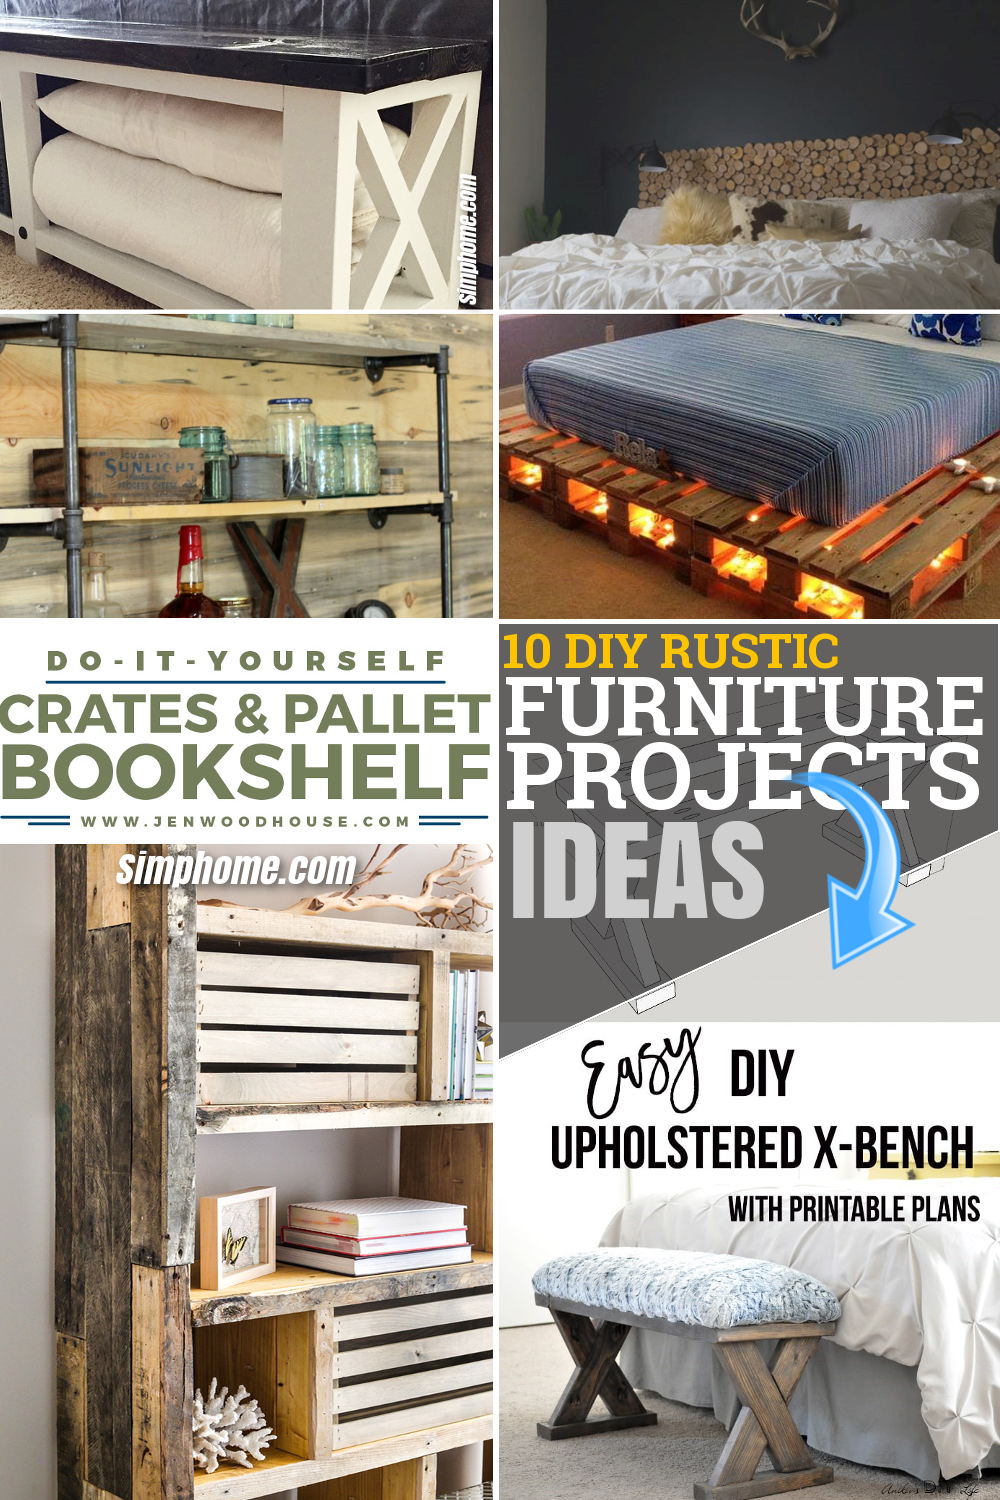 10 DIY Rustic Furniture Projects for Your Bedroom via Simphome.com Pinterest Featured Image